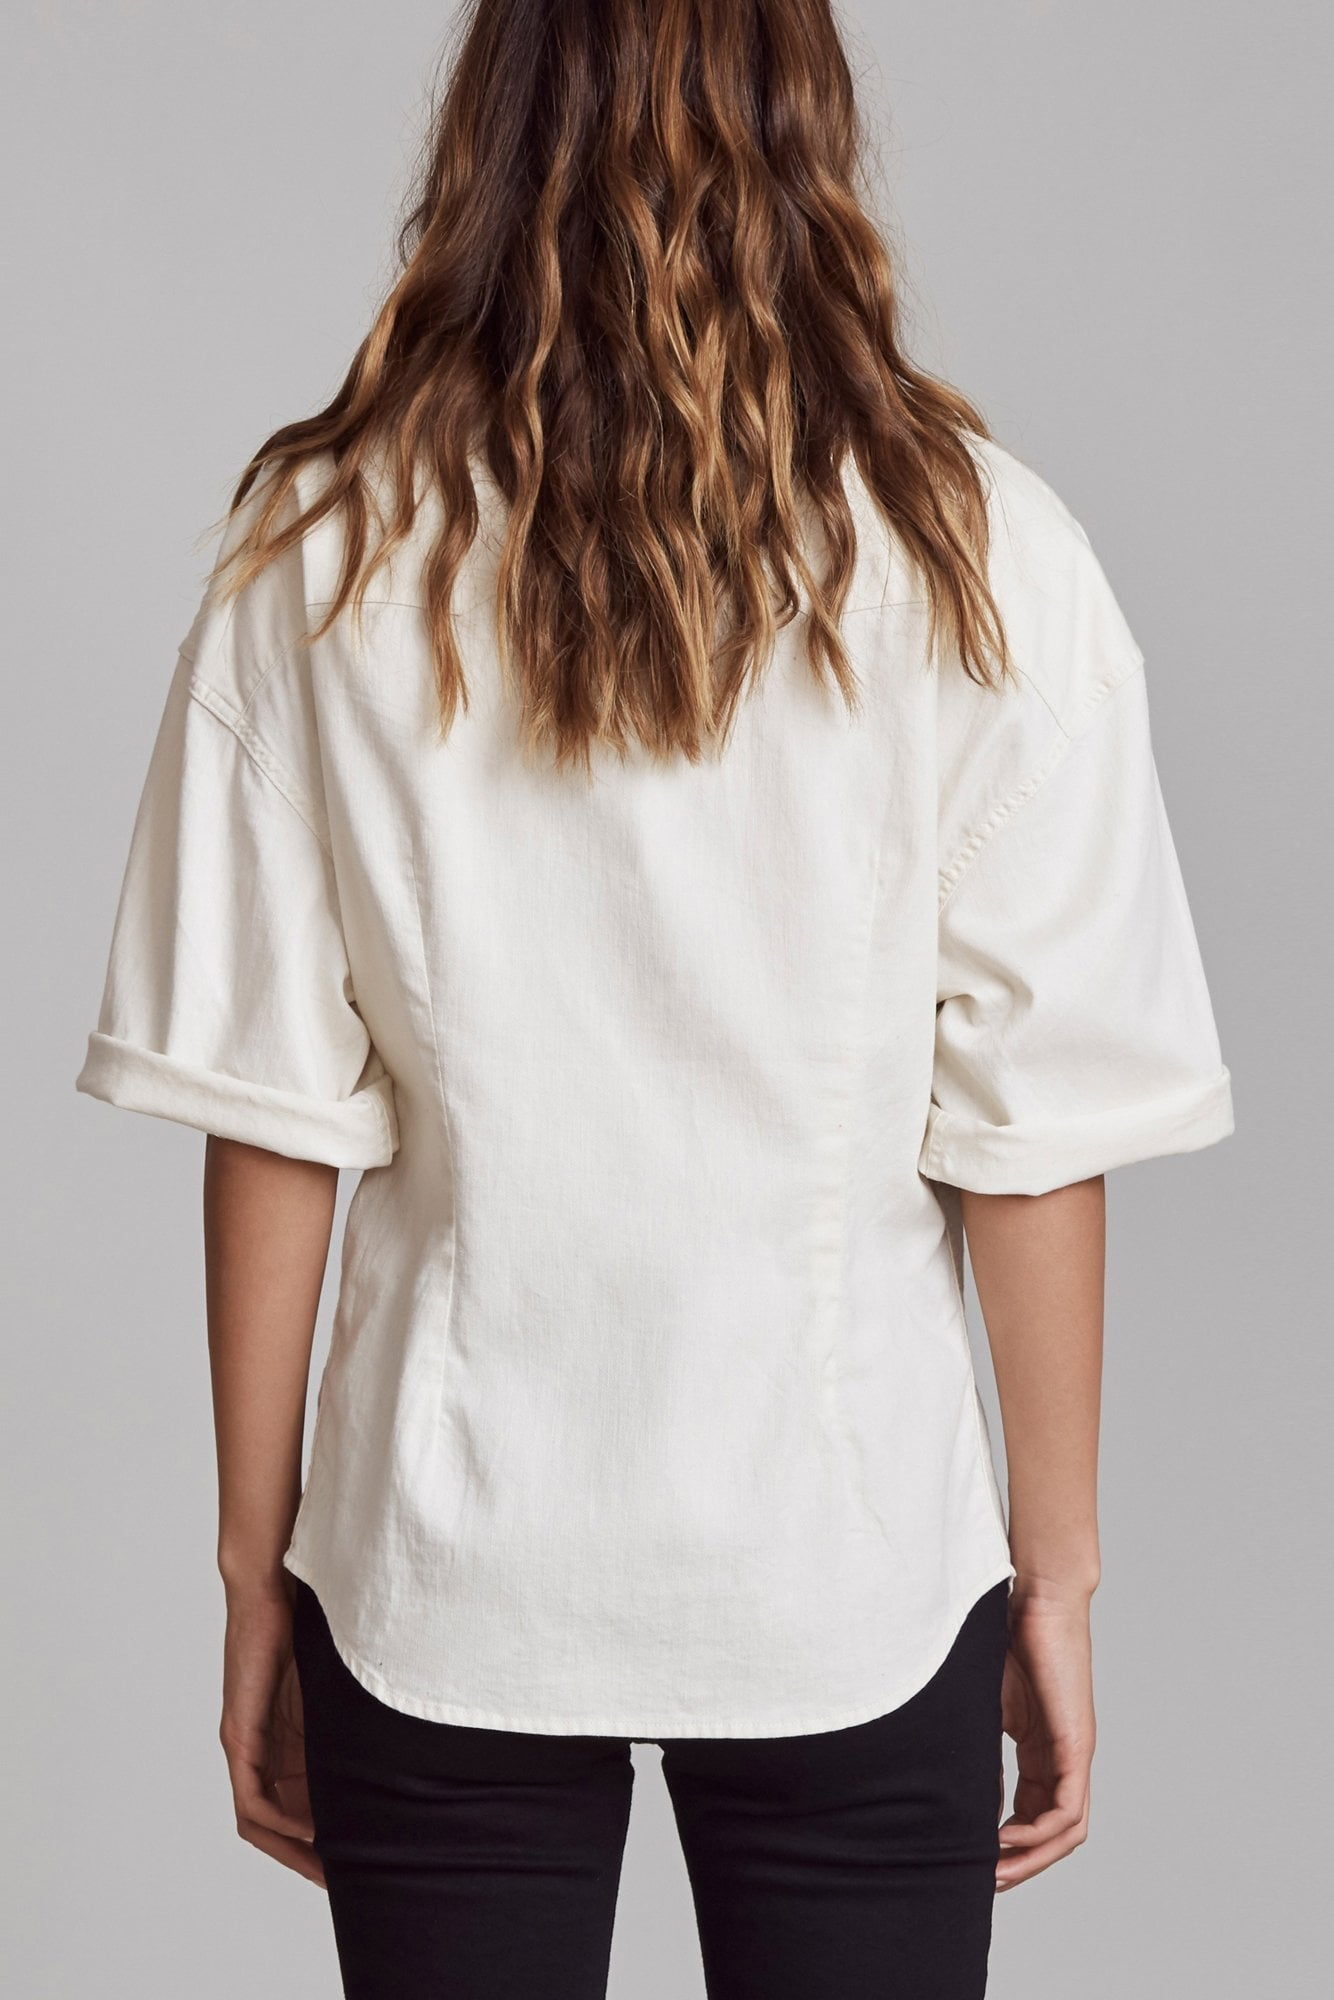 Oversized Short Sleeve Cowboy Shirt - White